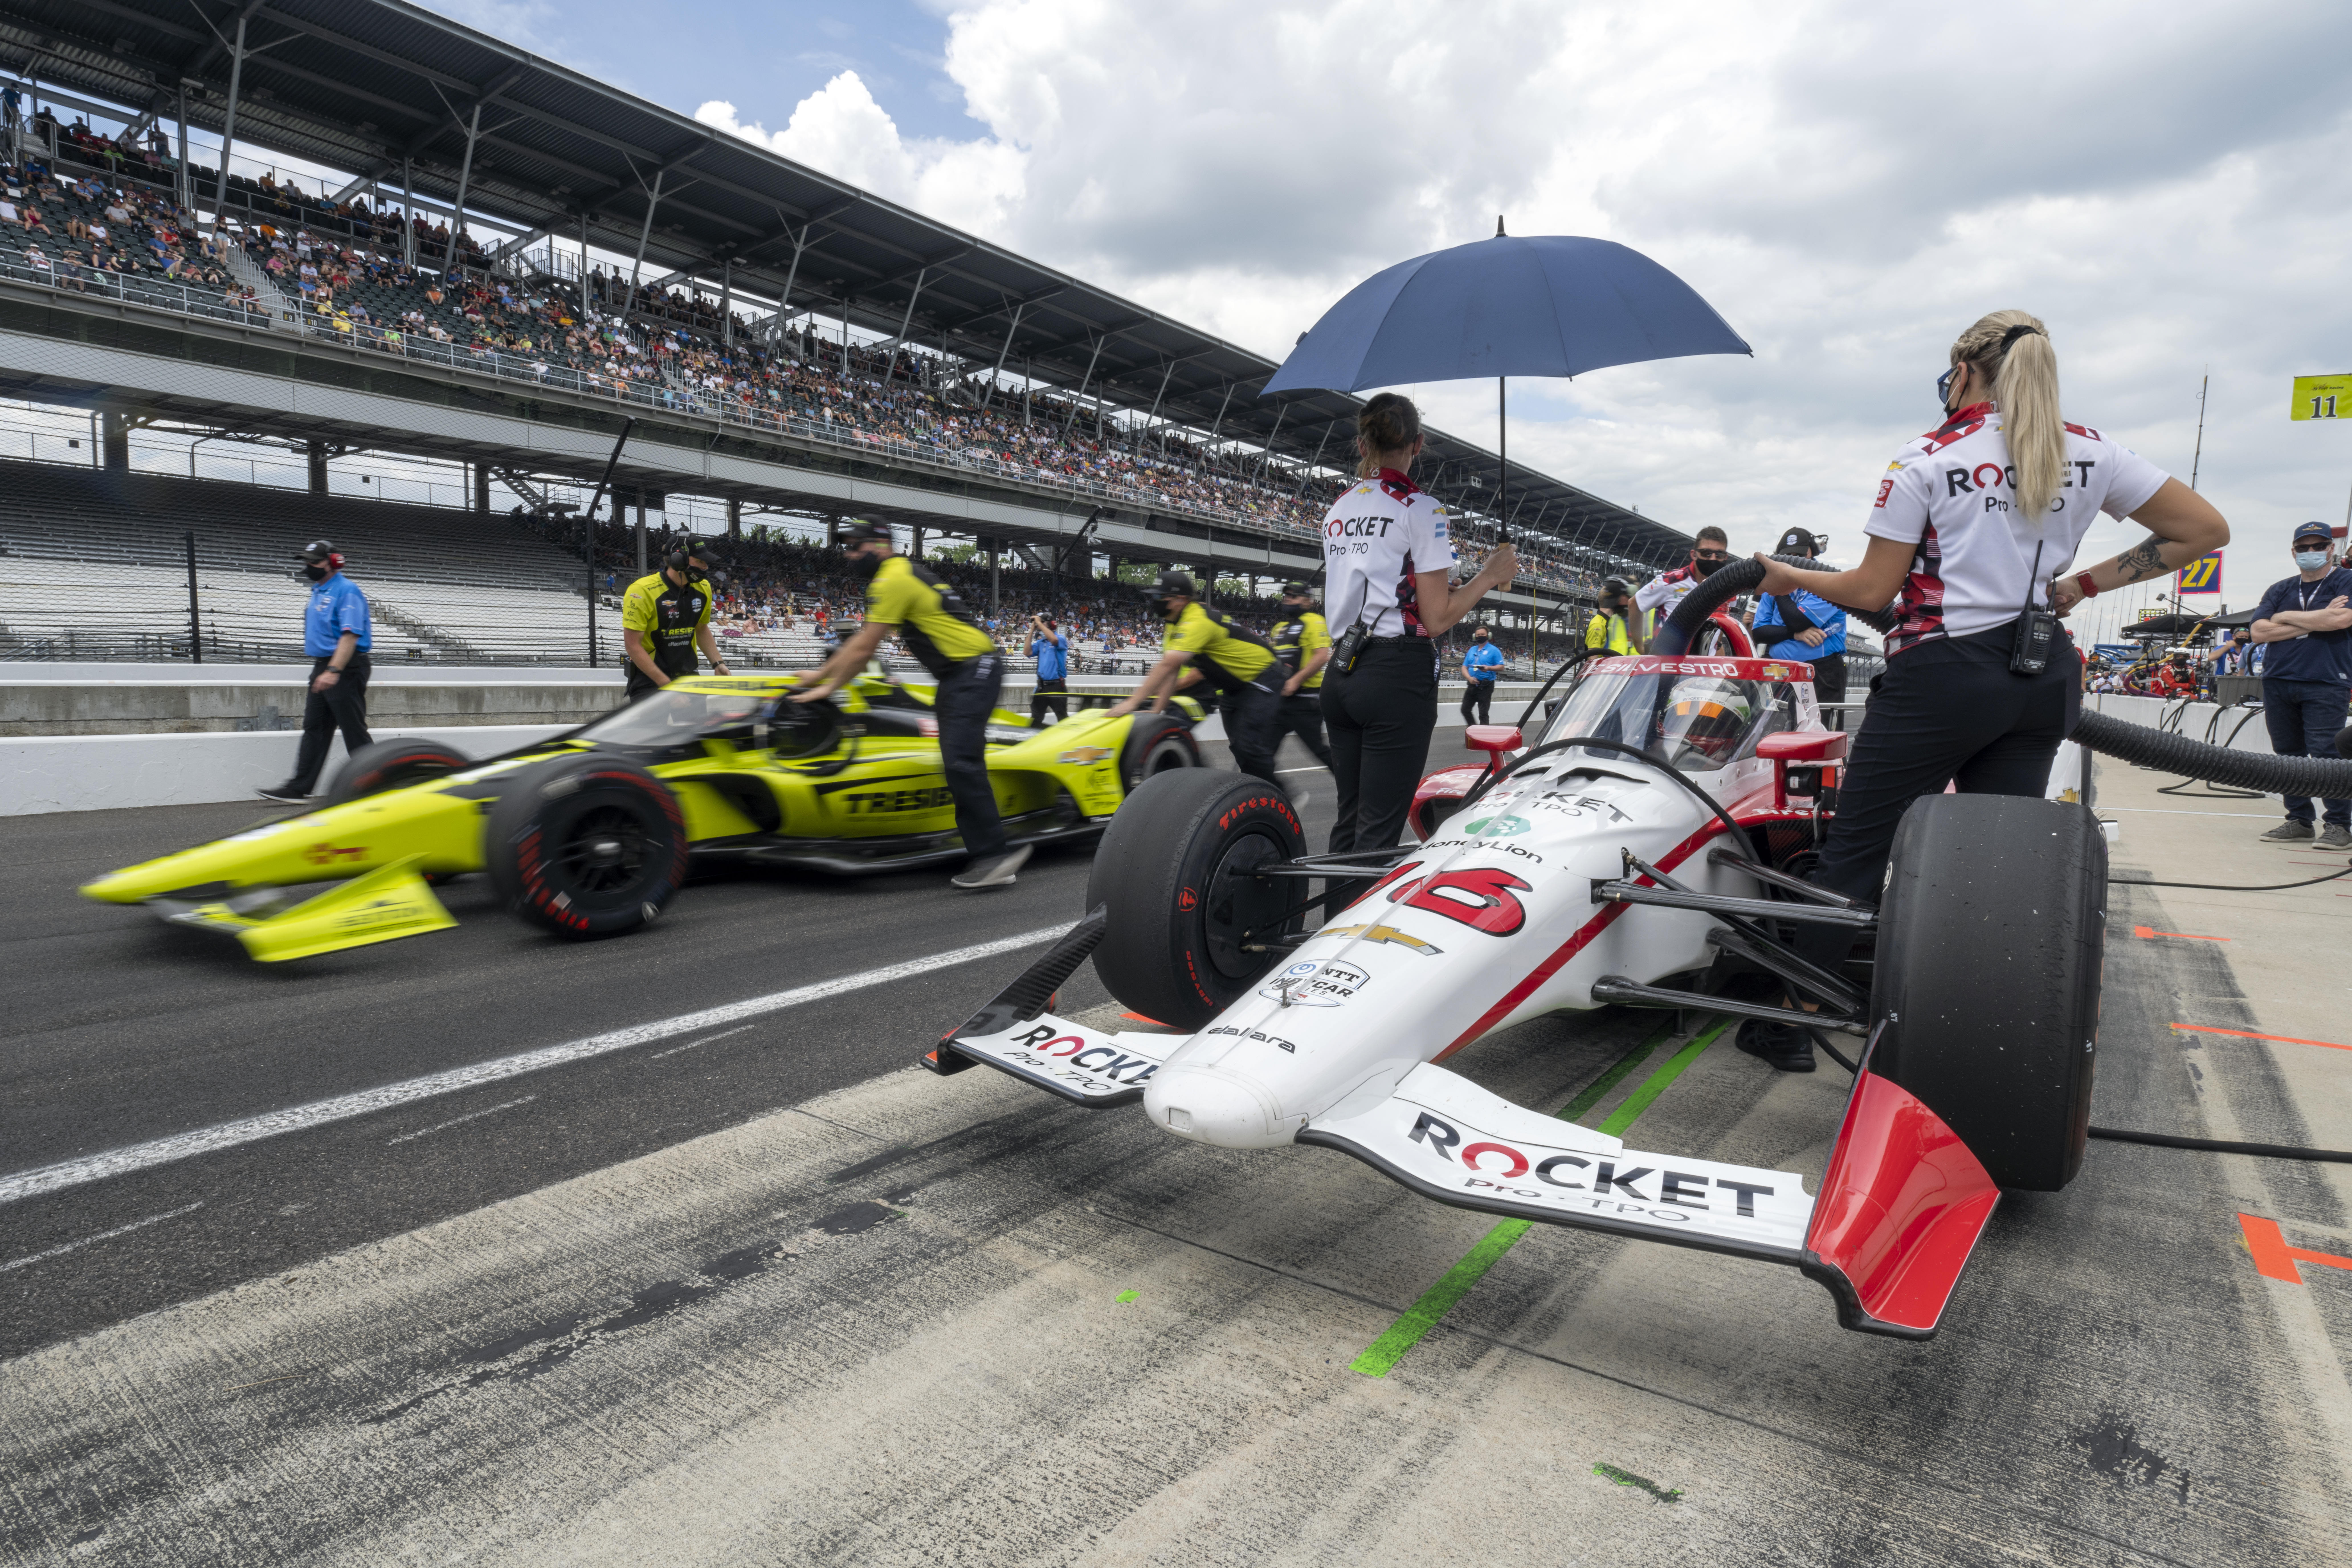 May 23, 2021; Indianapolis, IN, USA;A.J Foyt Enterprises driver Charlie Kimball (11) passes Rocket Pro TPO/Paretta Autosport driver Simona De Silvestro (16) whom he must beat in order to be eligible to race during last chance qualifications for the 2021 Indianapolis 500 at the Indianapolis Motor Speedway. / Marc Lebryk-USA TODAY Sports/File Photo